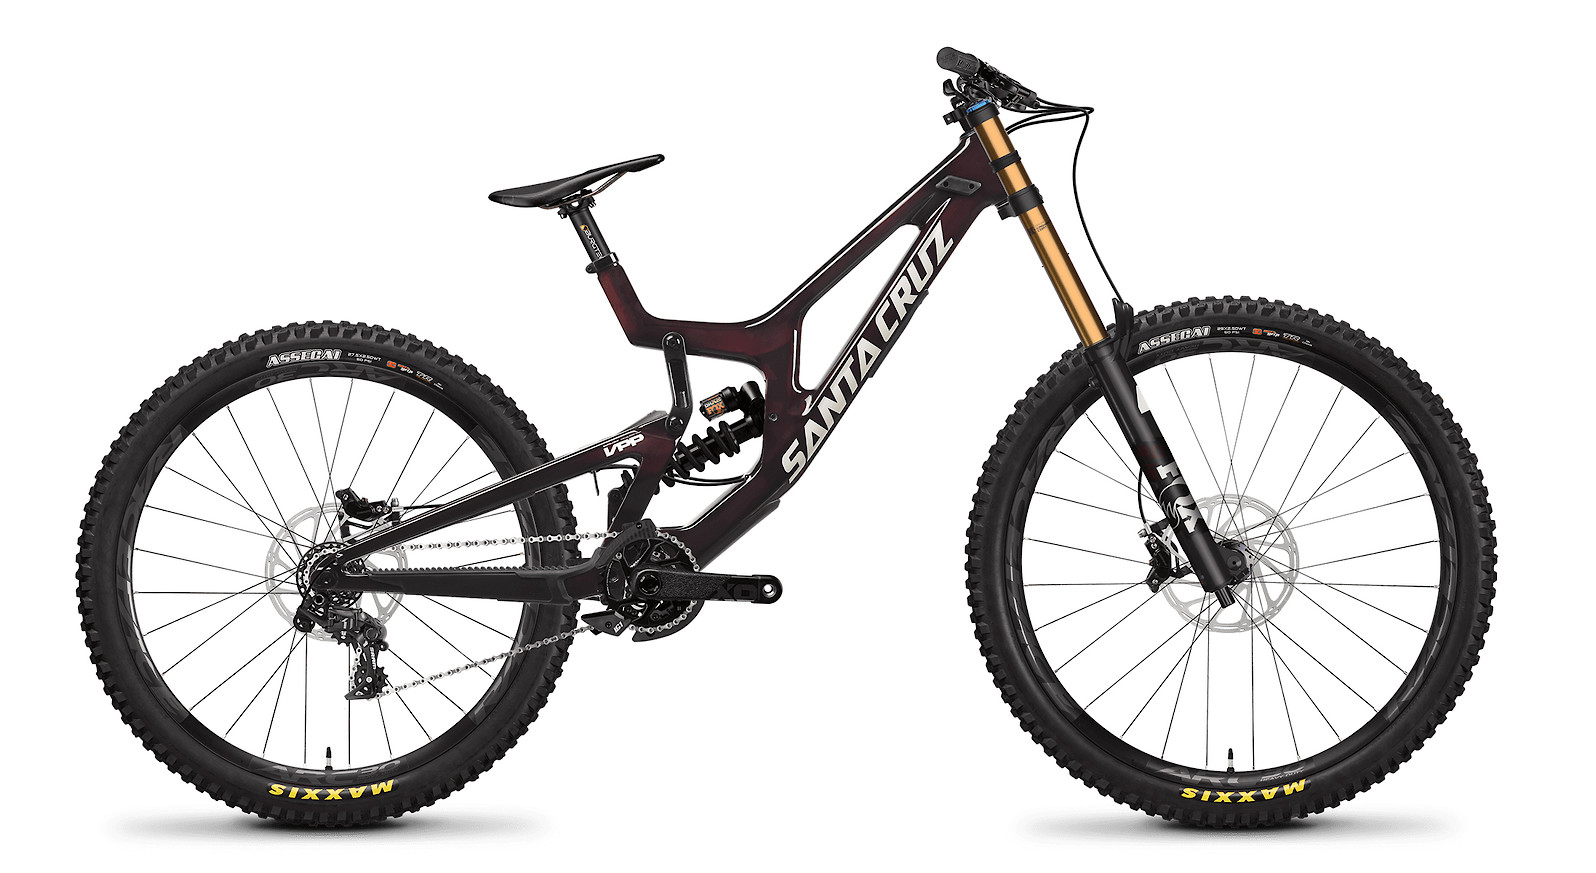 2021 Santa Cruz V10 DH X01 Carbon CC MX